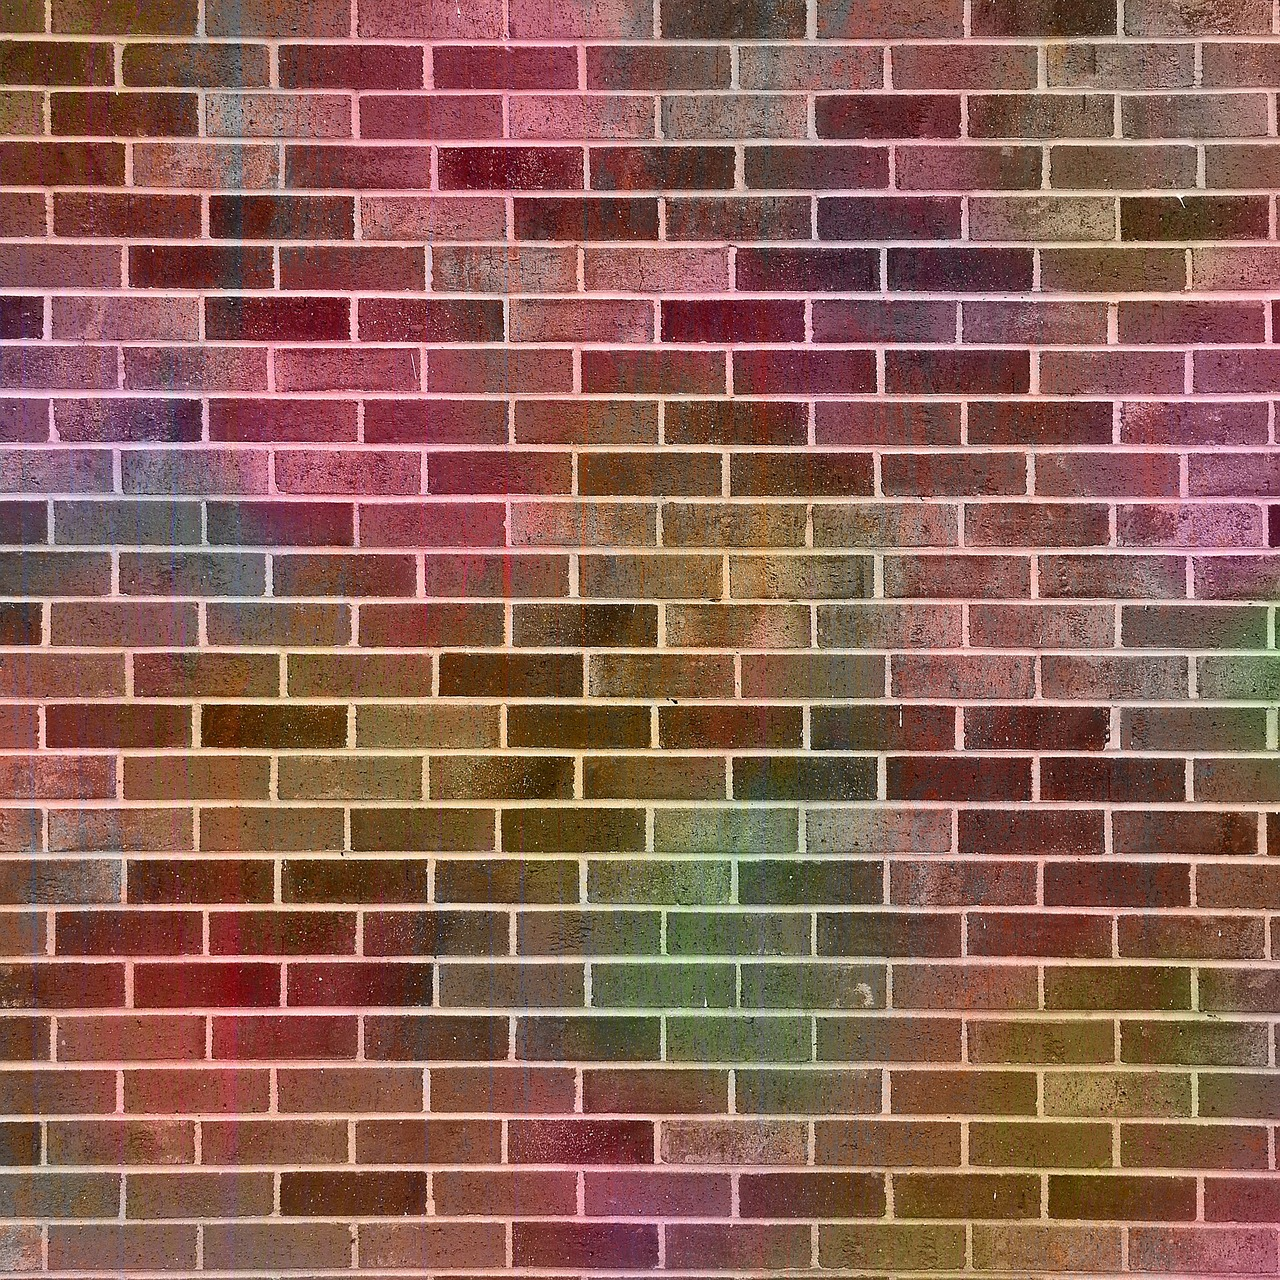 brick multi-color colorful free photo